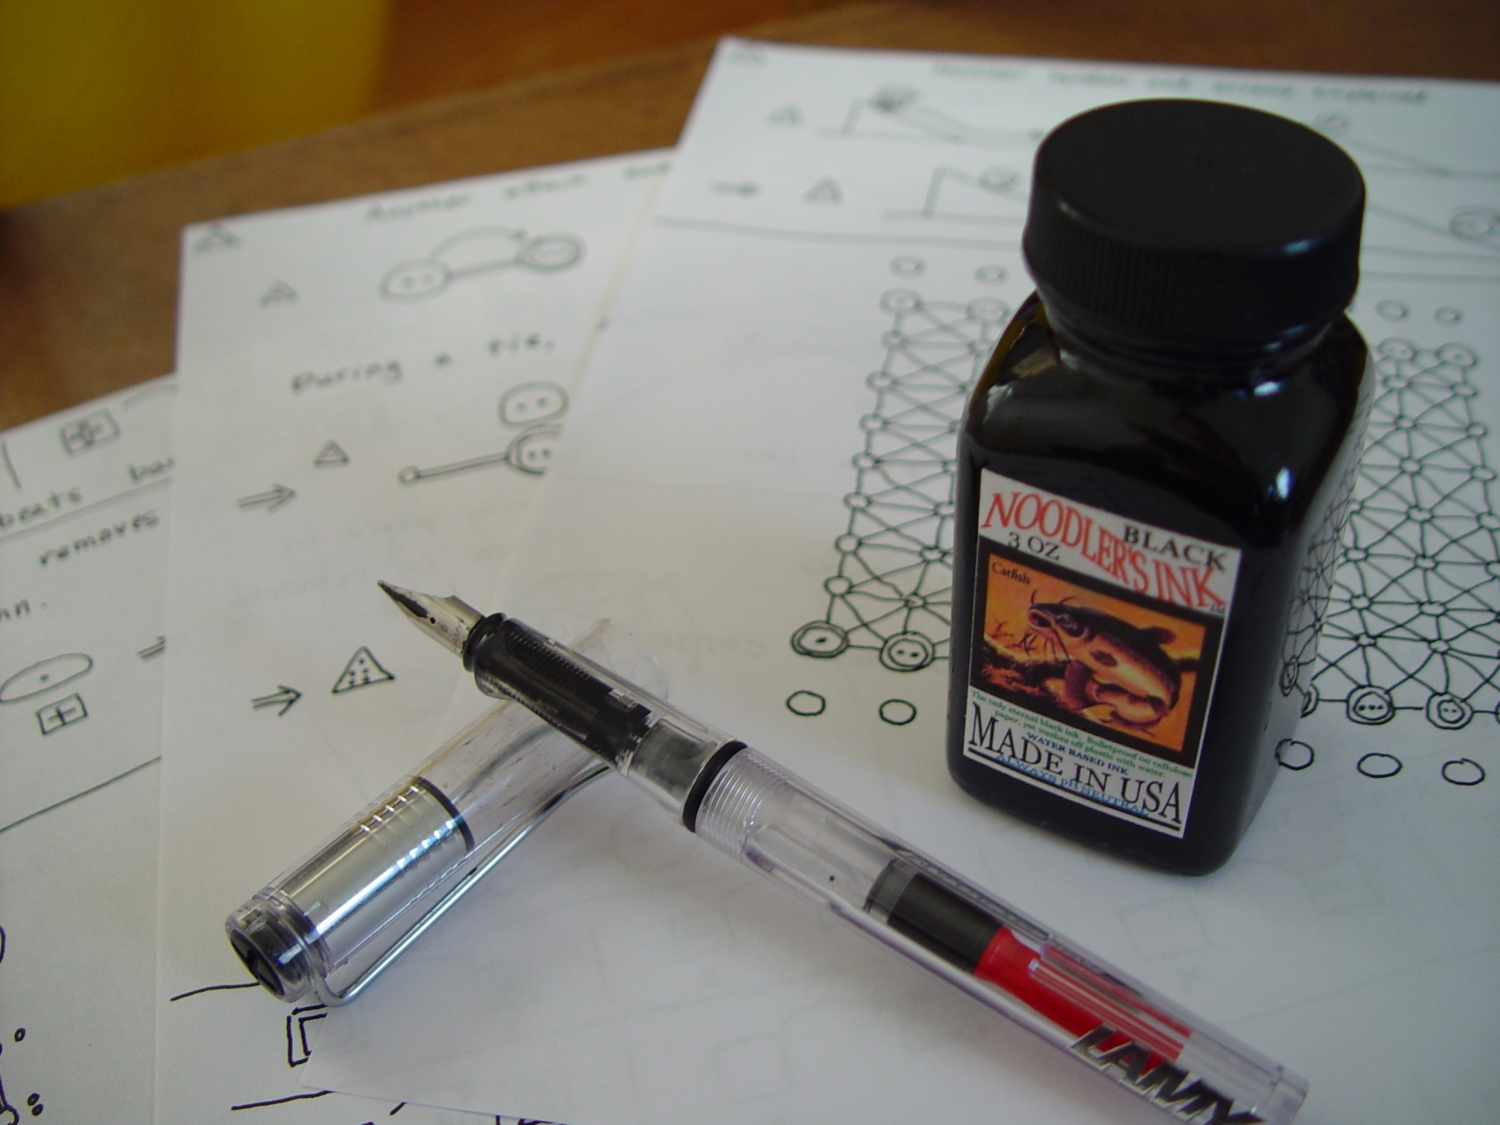 Game designing with the Lamy Vista and Noodler Ink